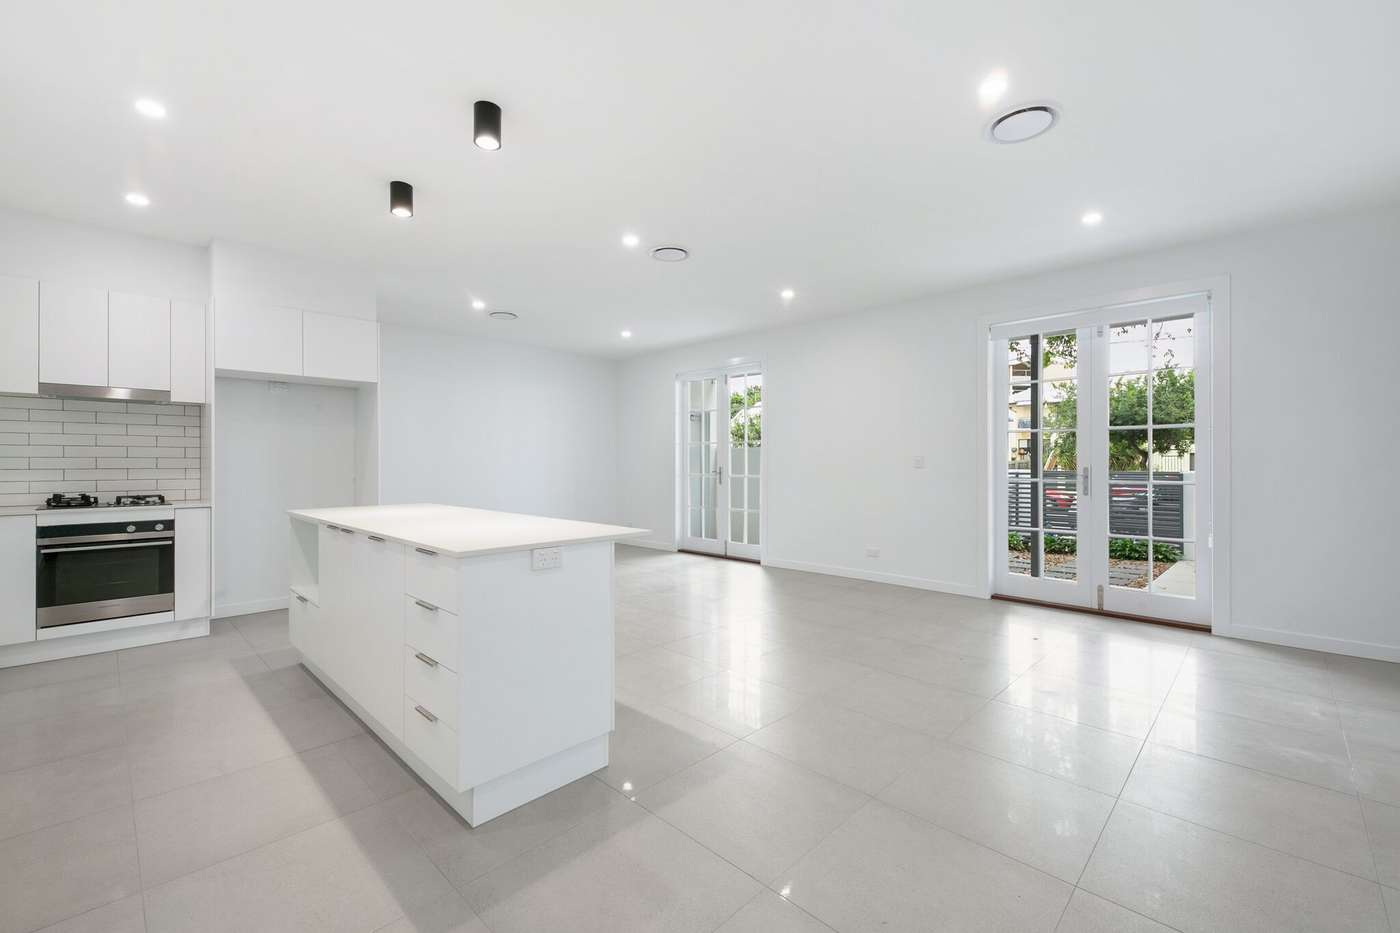 Main view of Homely house listing, 1A10 O'Connell Street, West End, QLD 4101